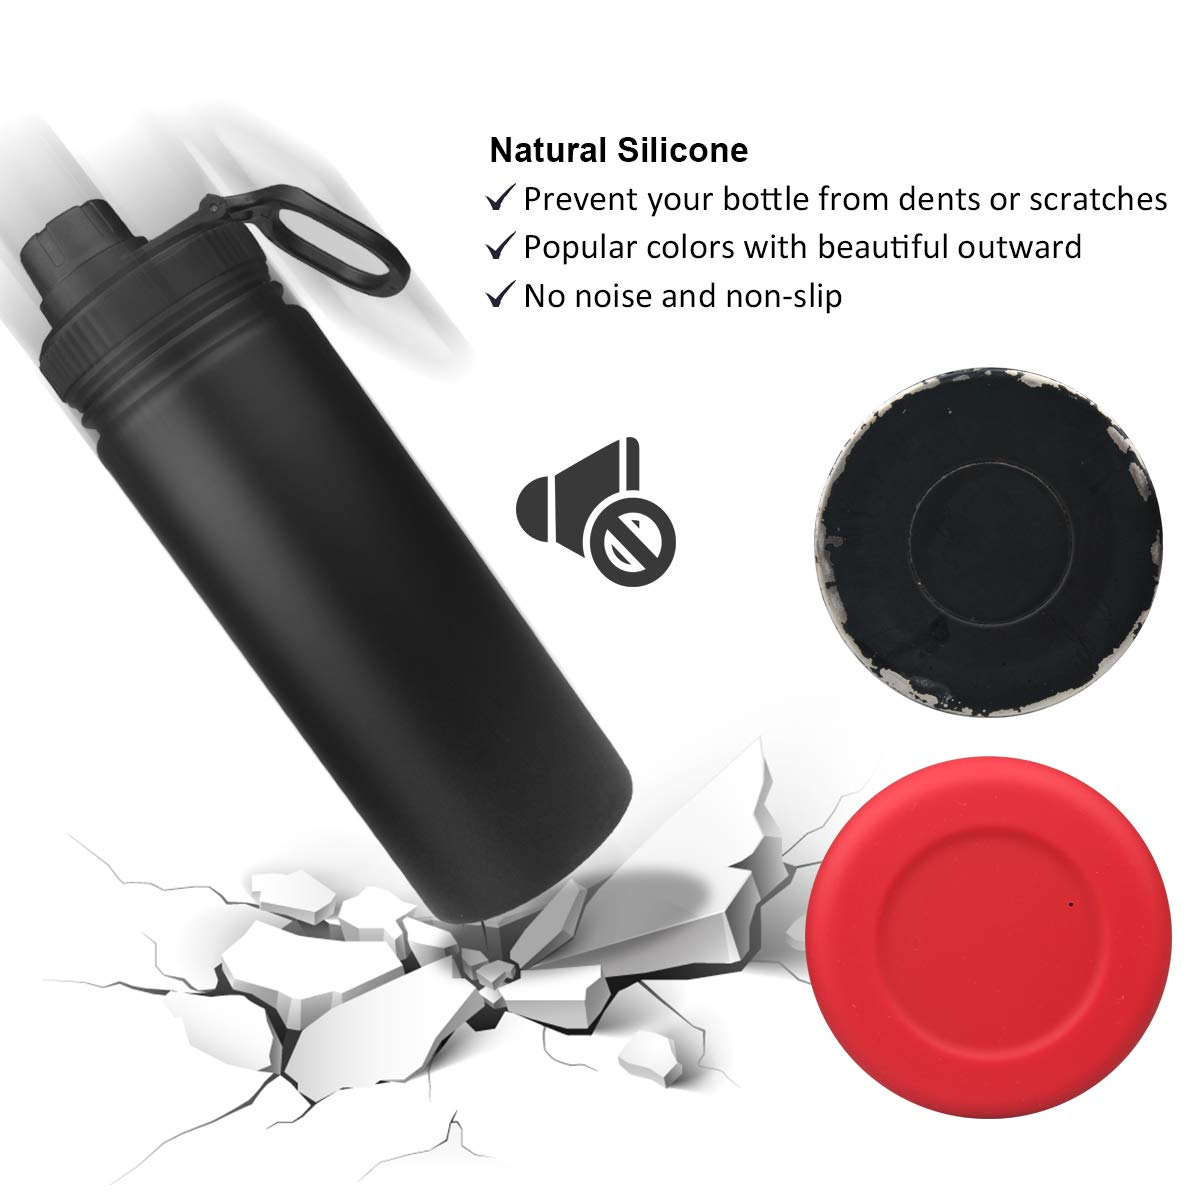 Soft Silicone Anti-Slip Bottom Cover Fits 12-24oz//32-40oz Stainless Steel Water Bottle Sports Travel Pet Bowl CampFENSE Protective Silicone Sleeve Water Bottle Boot